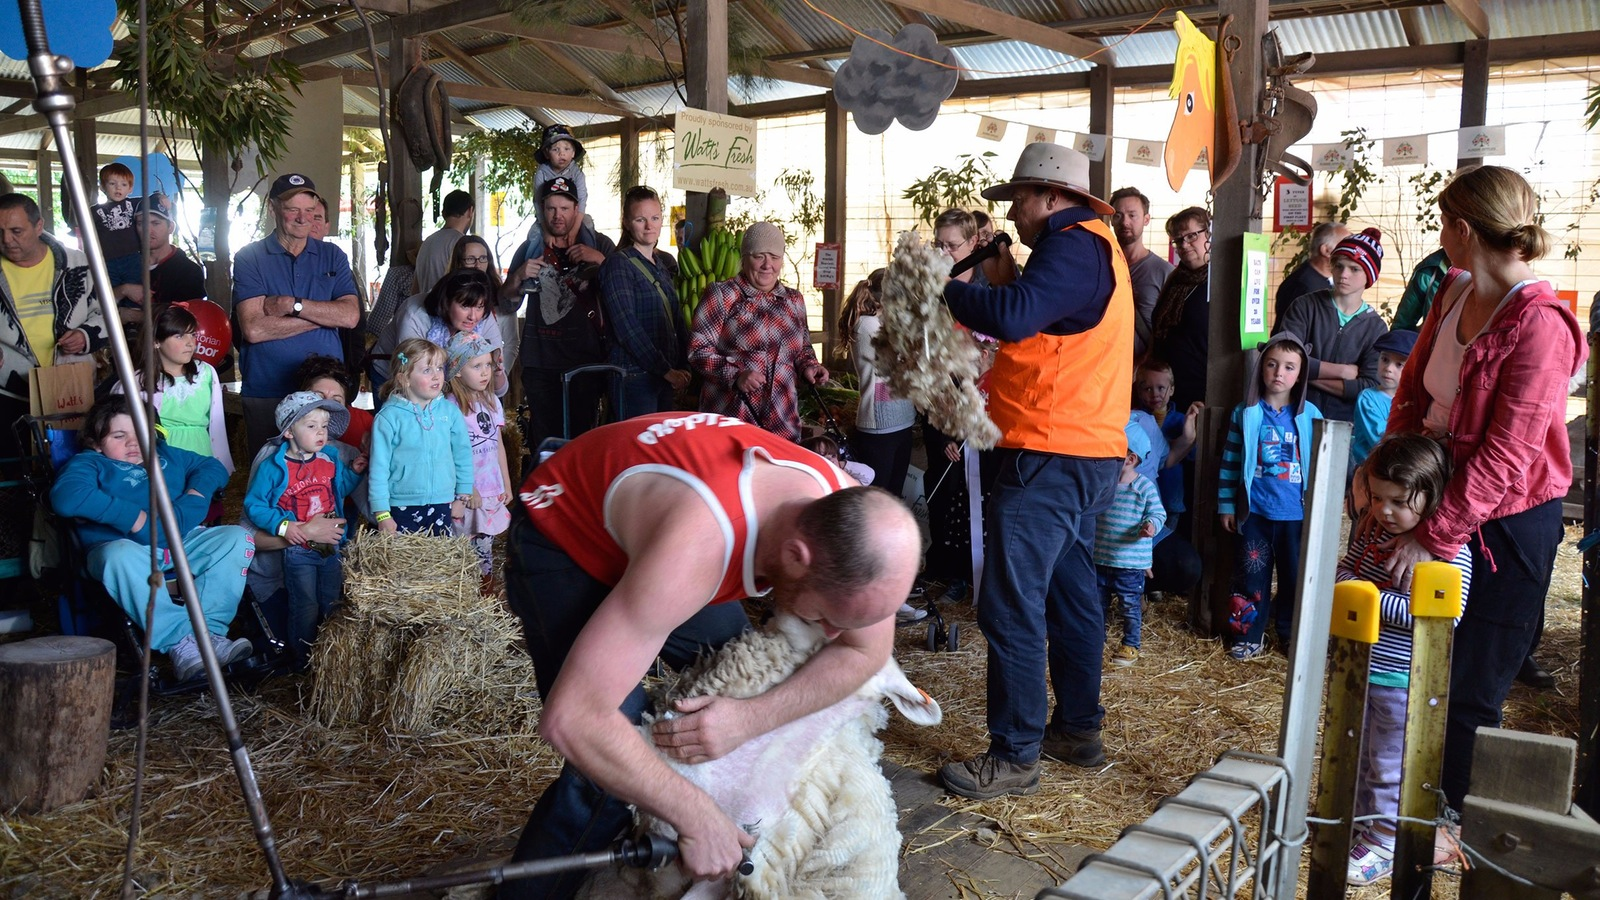 The farm shed is one of the most popular attractions at the show